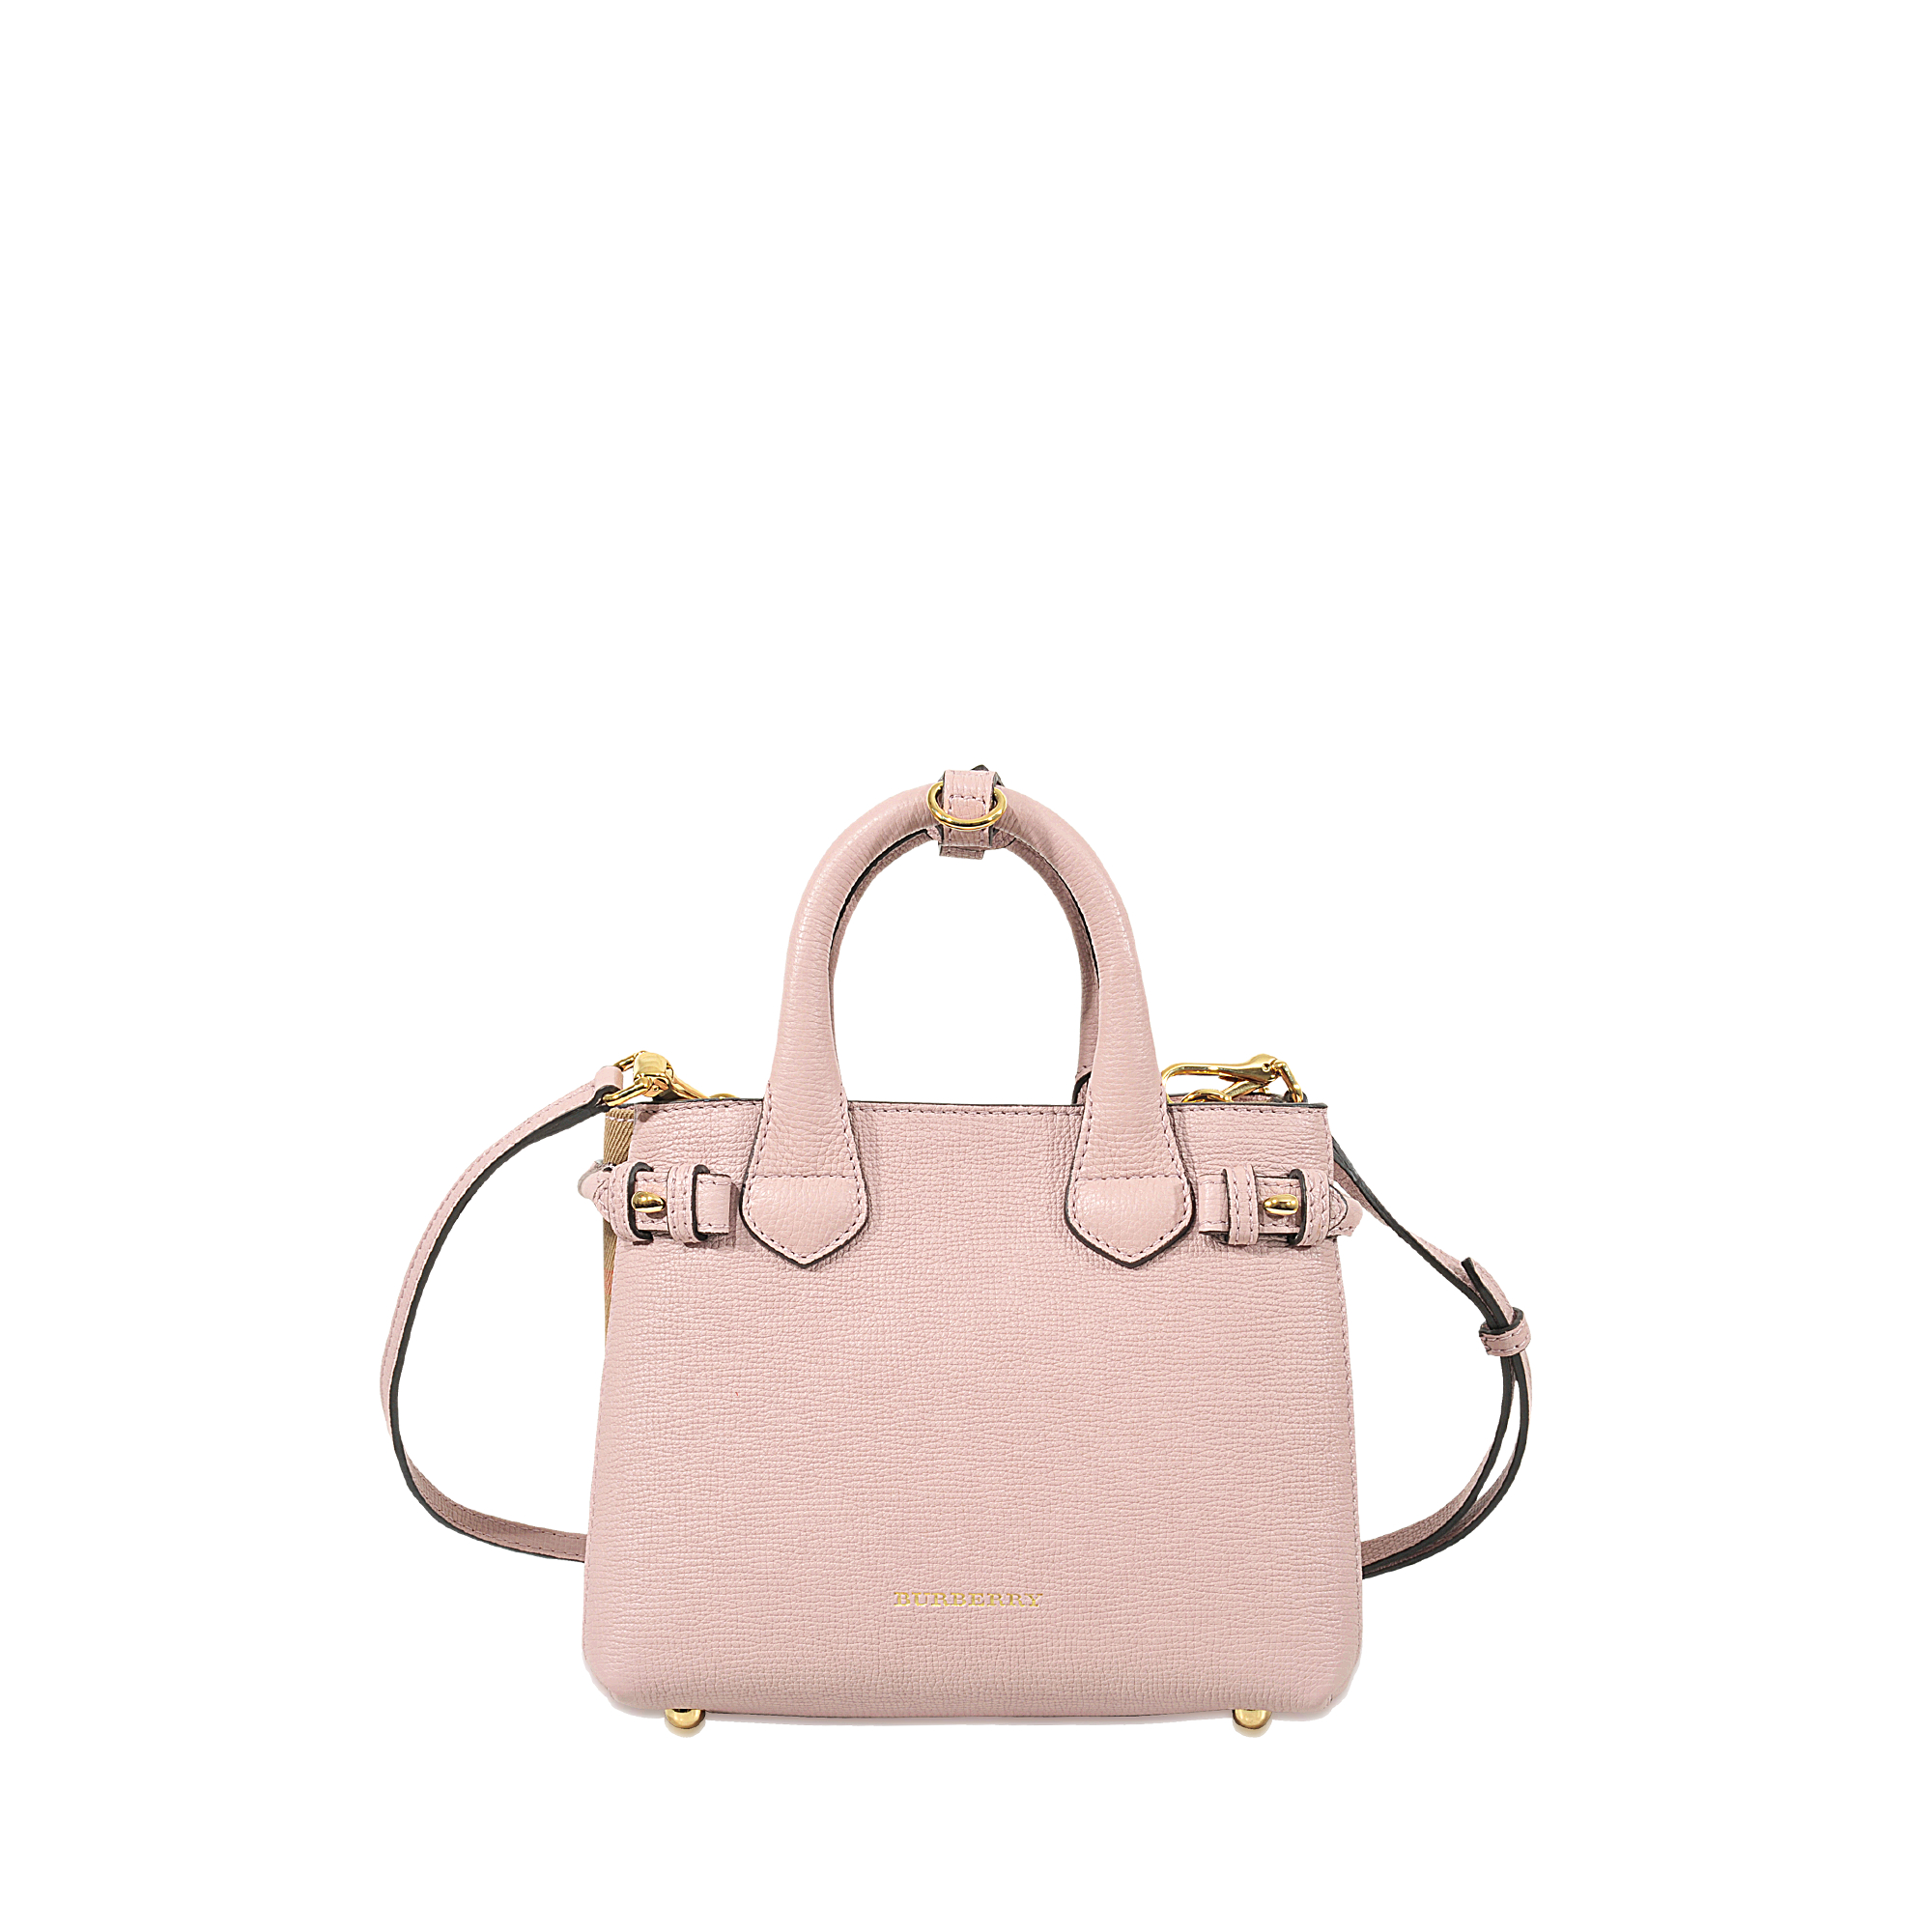 72a6e4b0776b Lyst - Burberry Baby Banner Bag in Pink